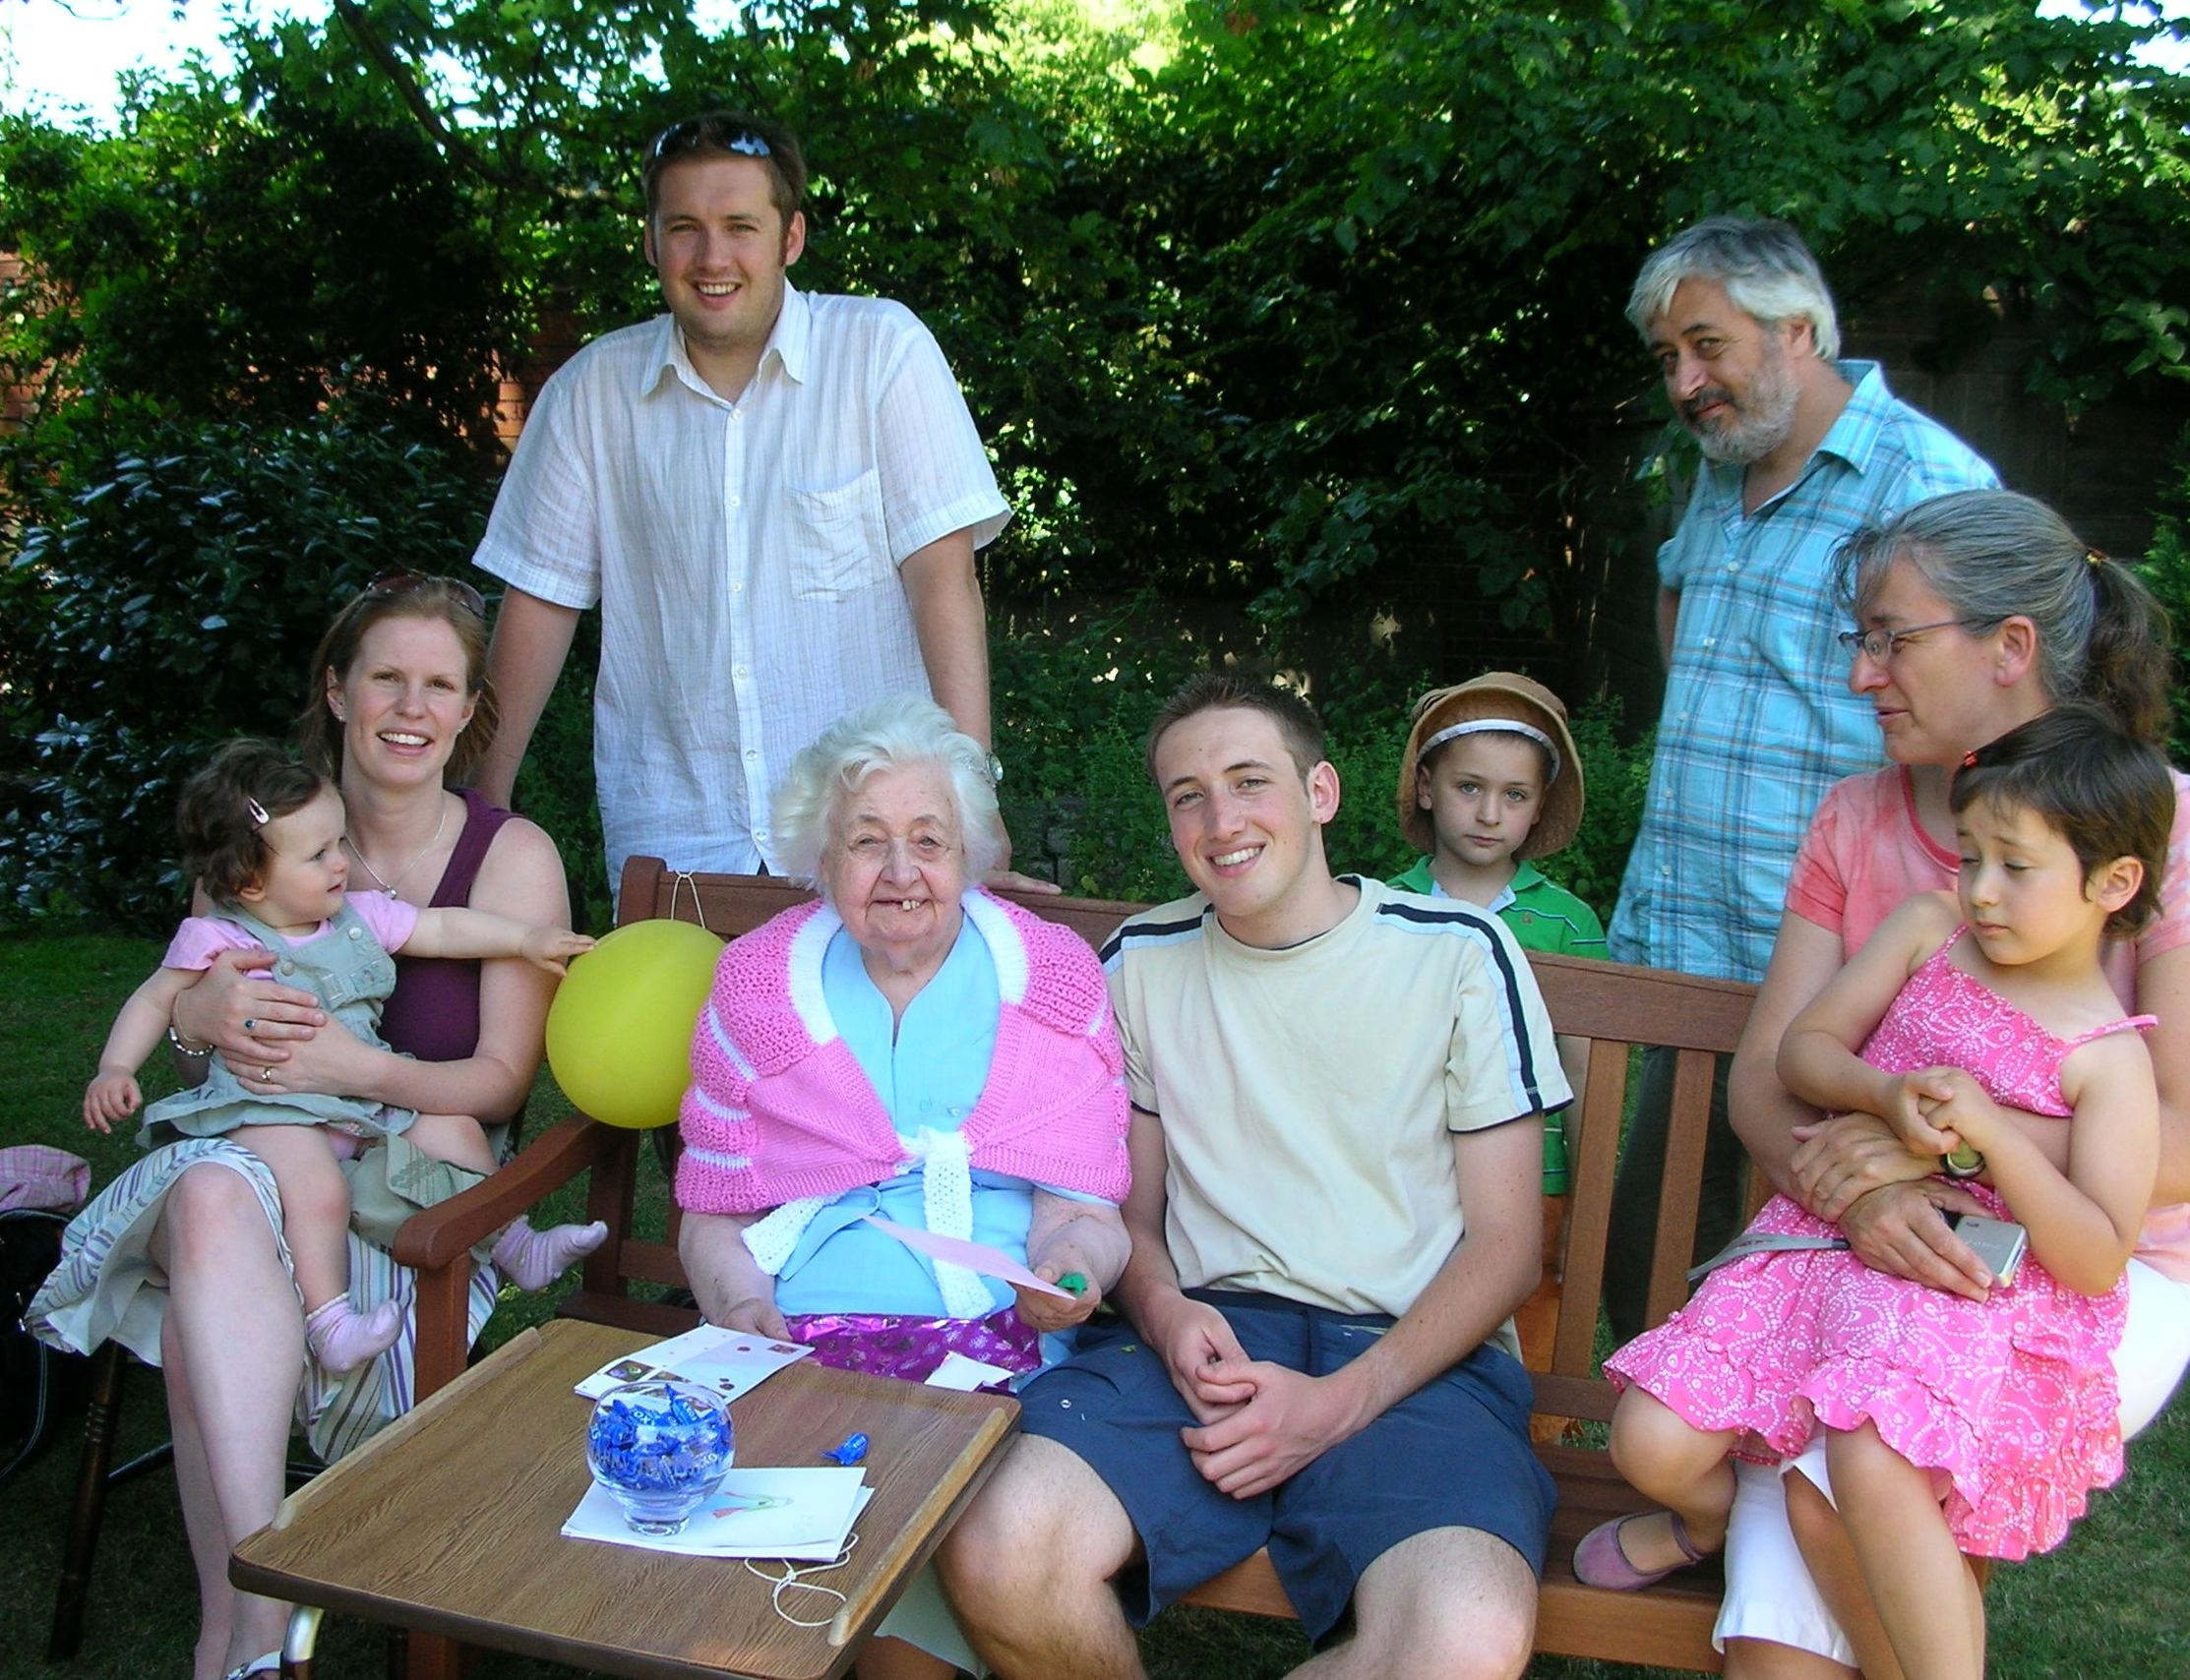 2006 celebrating his mother's birthday